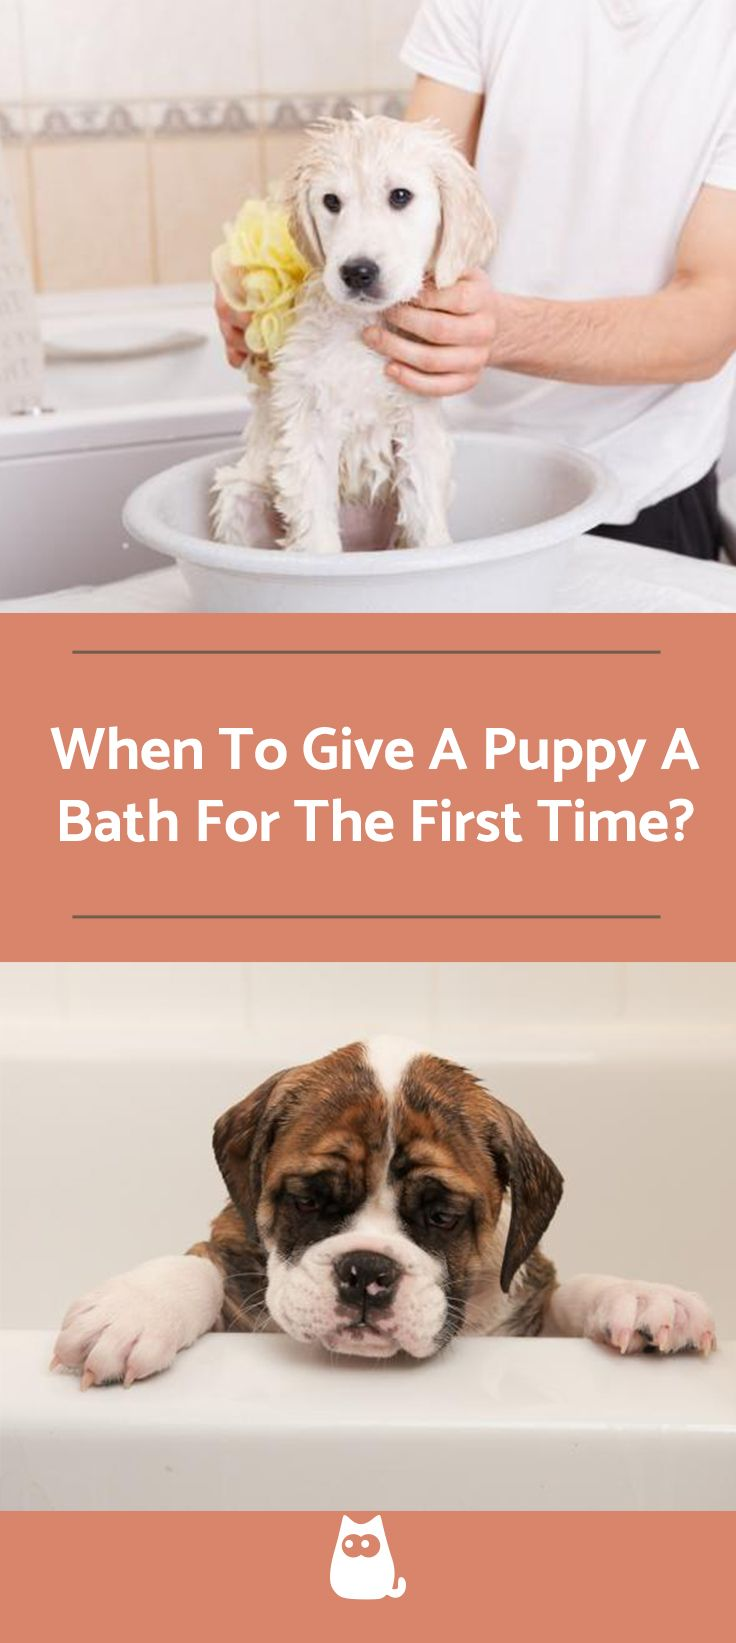 When To Give A Puppy A Bath For The First Time About Dogs